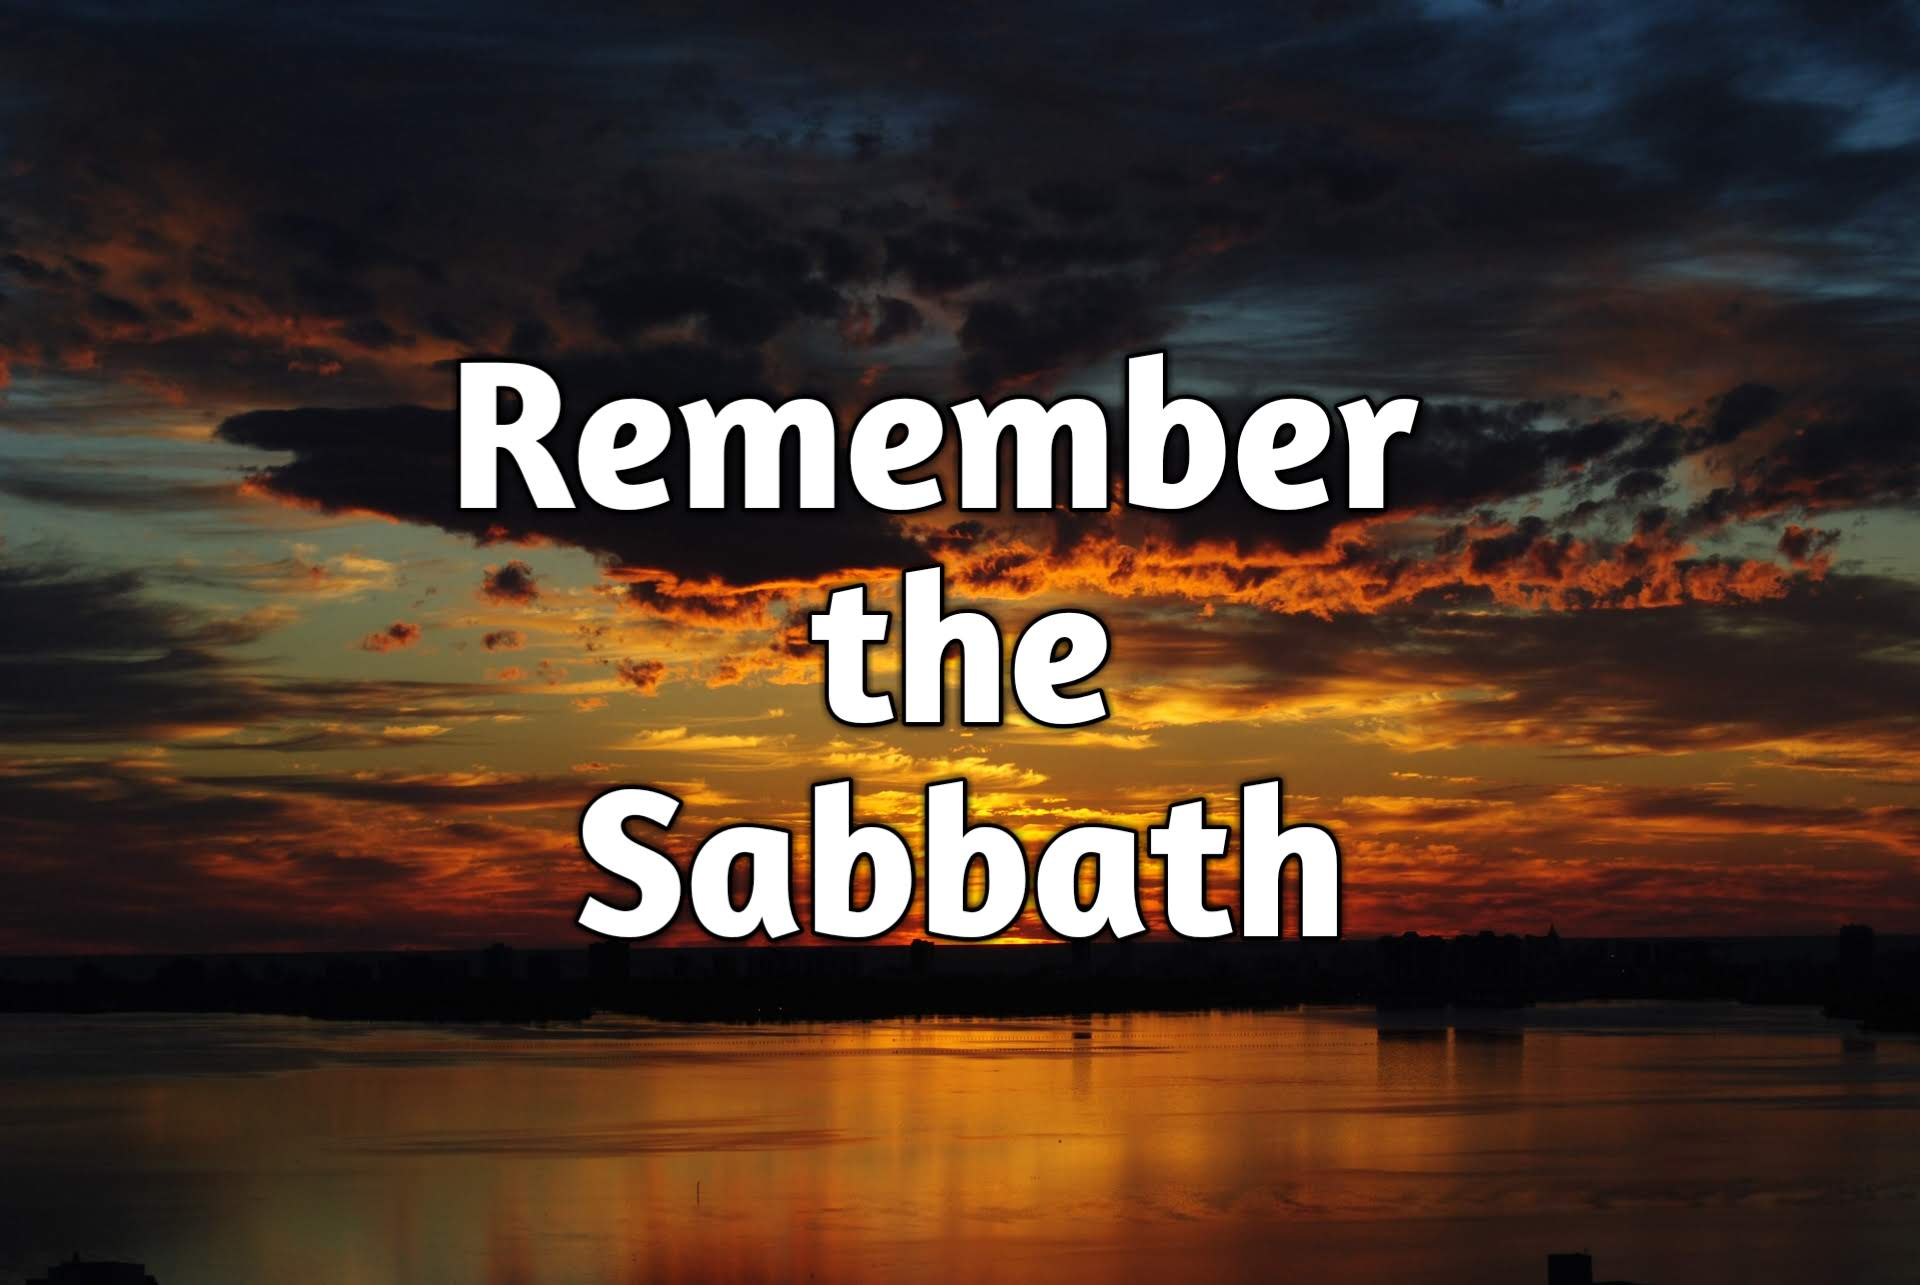 Why Did God Give You the Sabbath